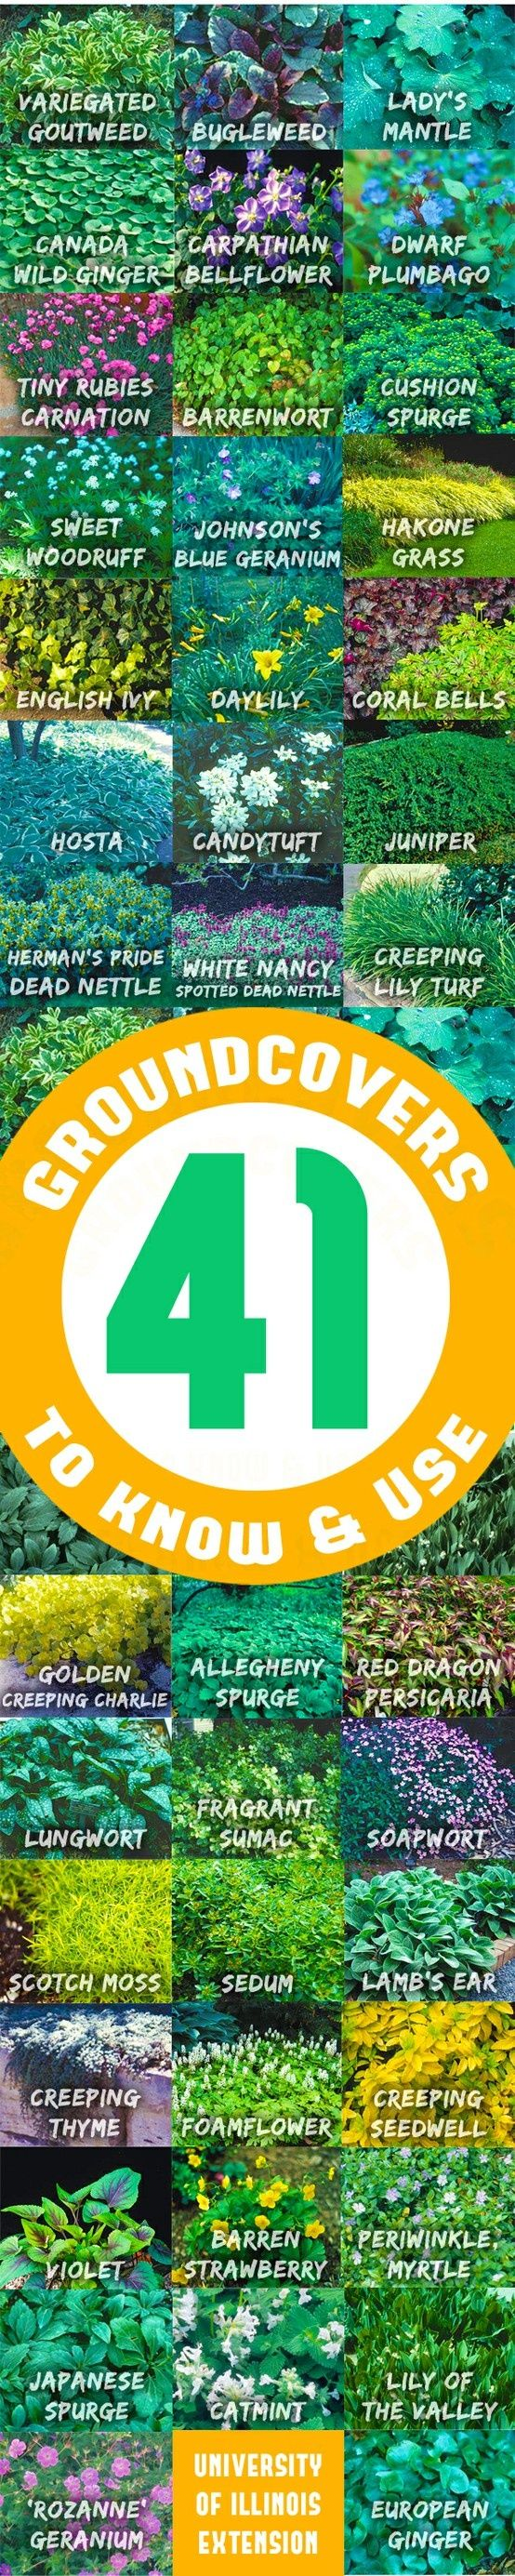 41 Groundcovers to Know & Use